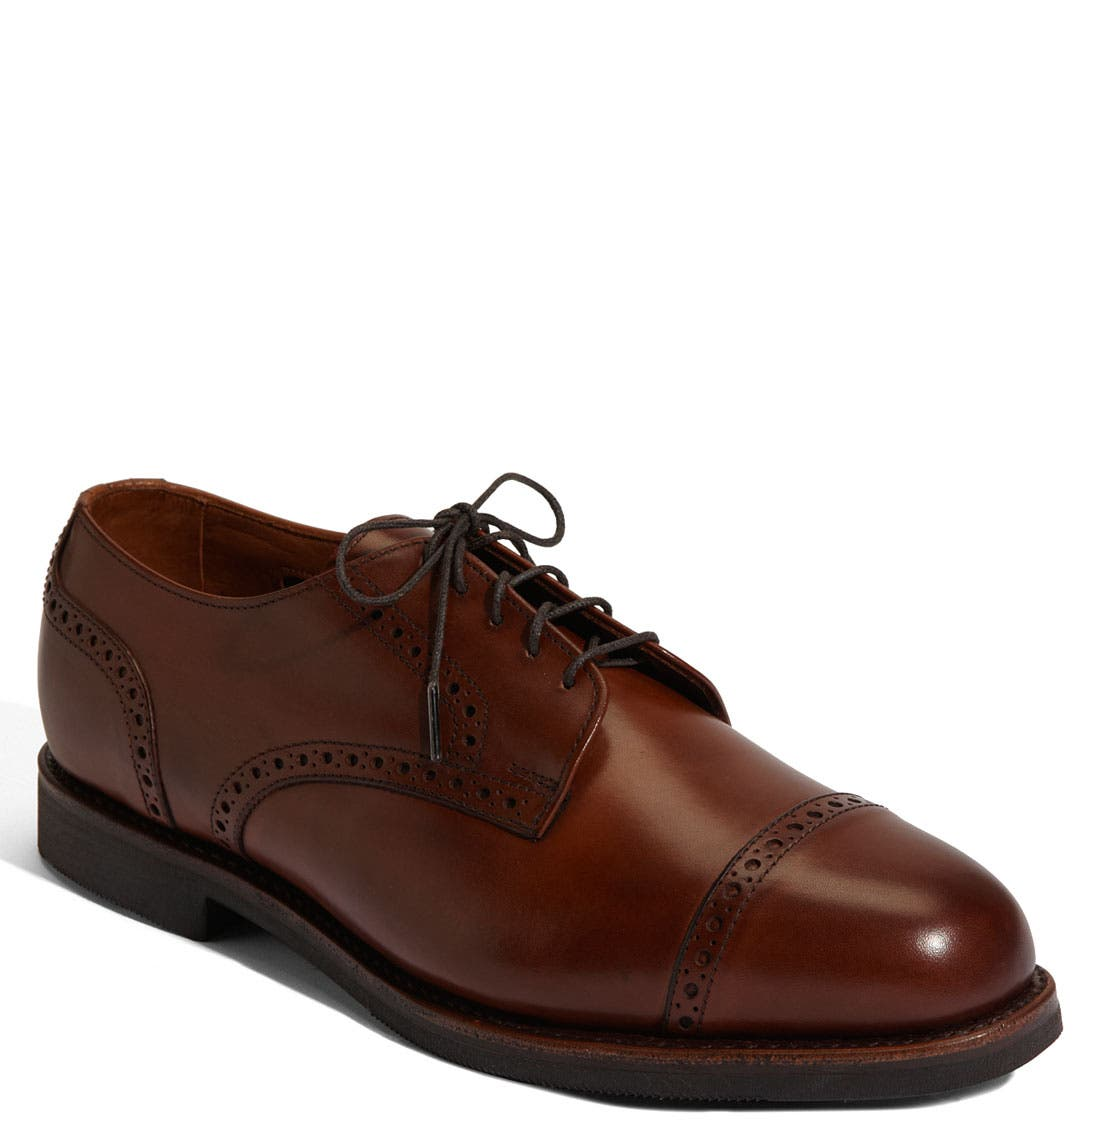 Alternate Image 1 Selected - Allen Edmonds Benton Cap Toe Oxford